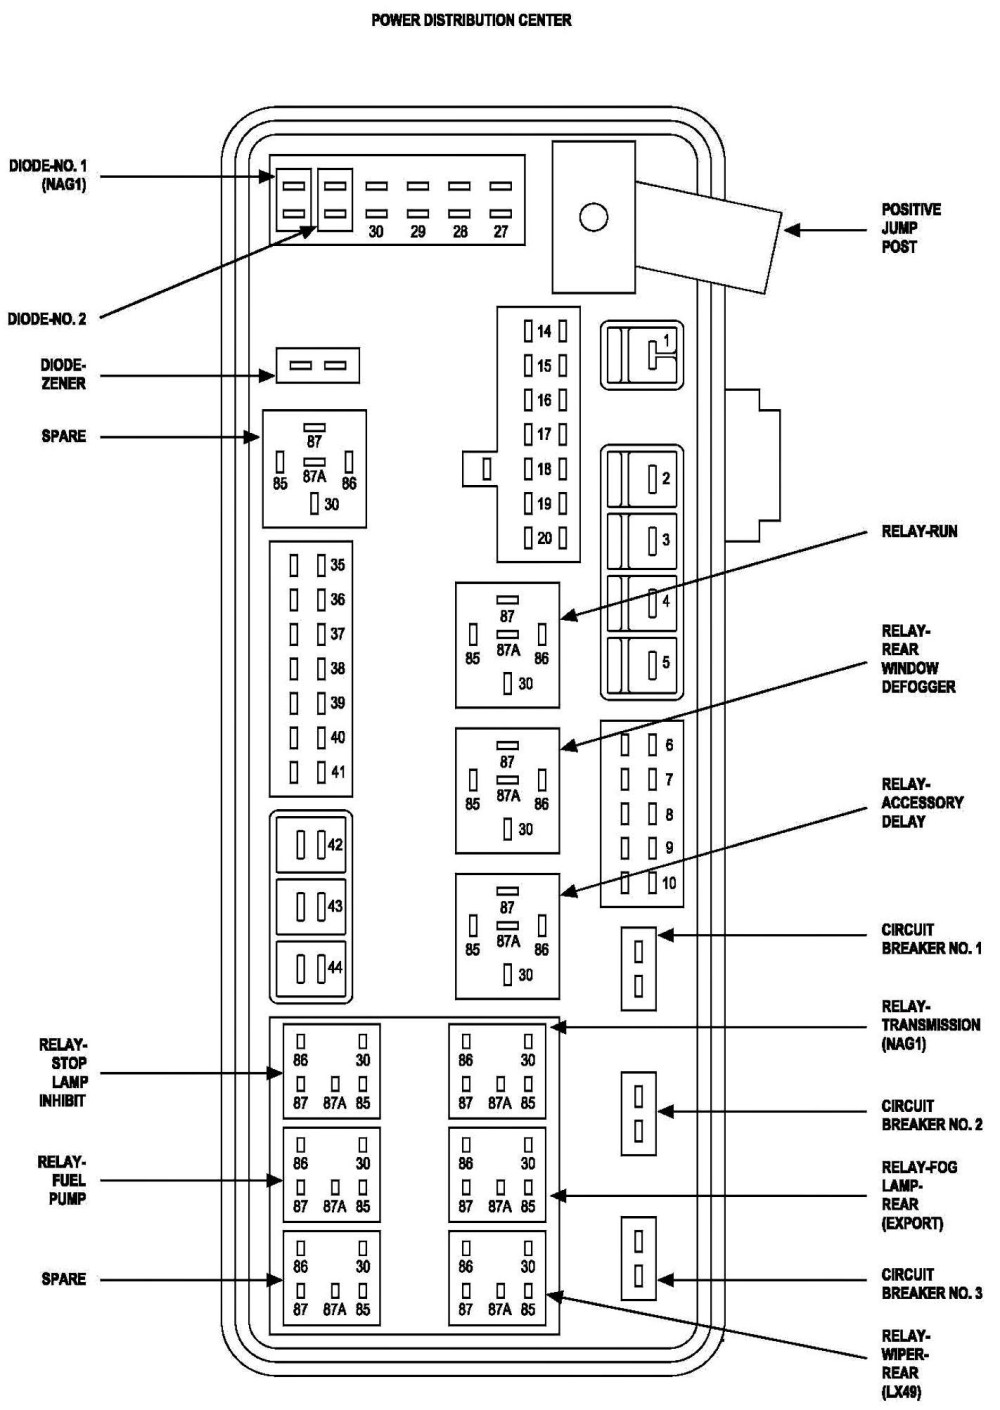 medium resolution of 2014 chrysler 300 fuse box diagram wiring diagram library 2015 chrysler 200 fuse box location 300c